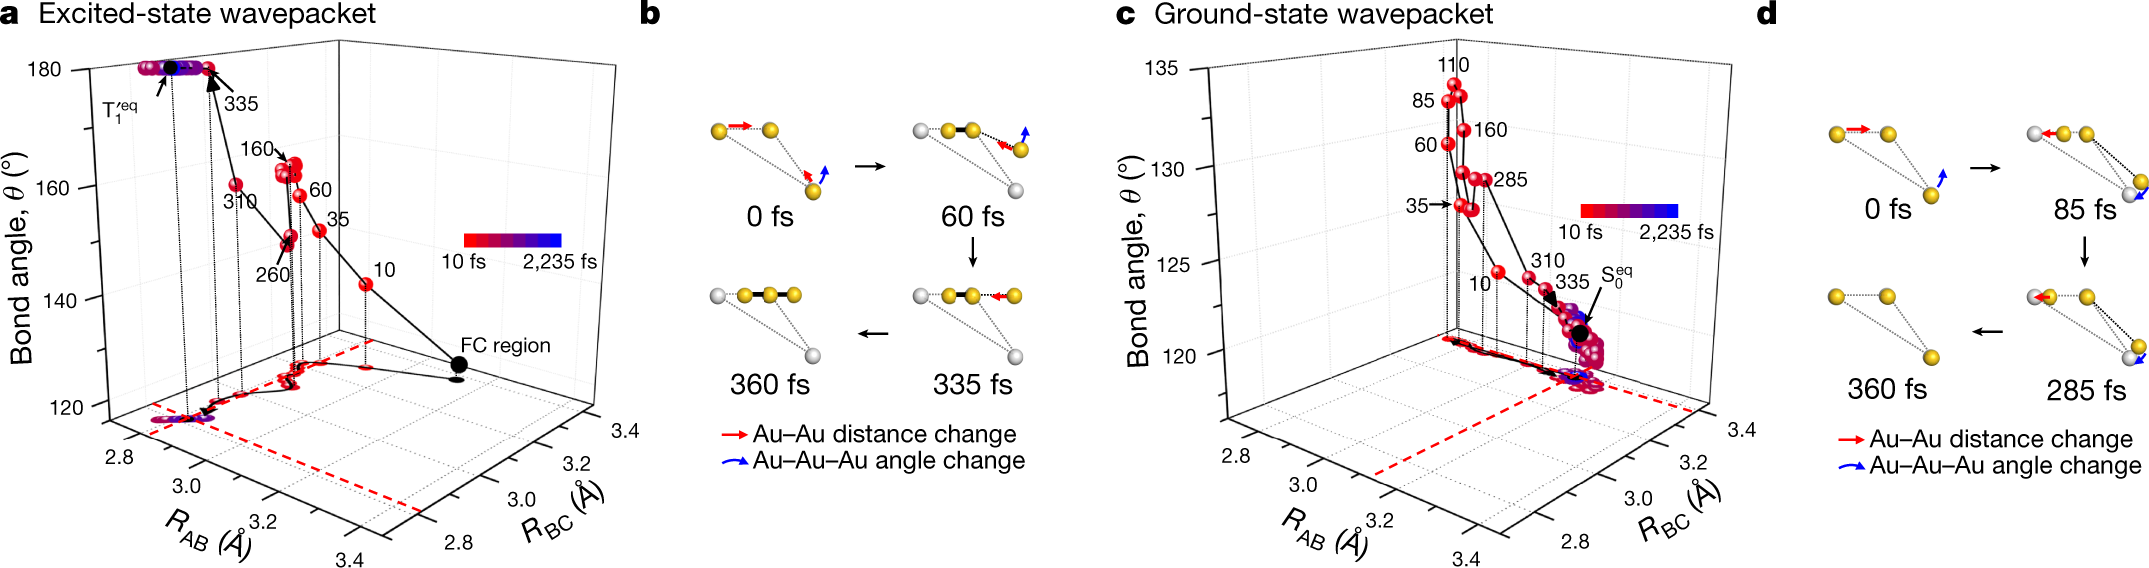 Figure 2. Trajectories of the excited-state and ground-state wavepackets determined from TRXL data.